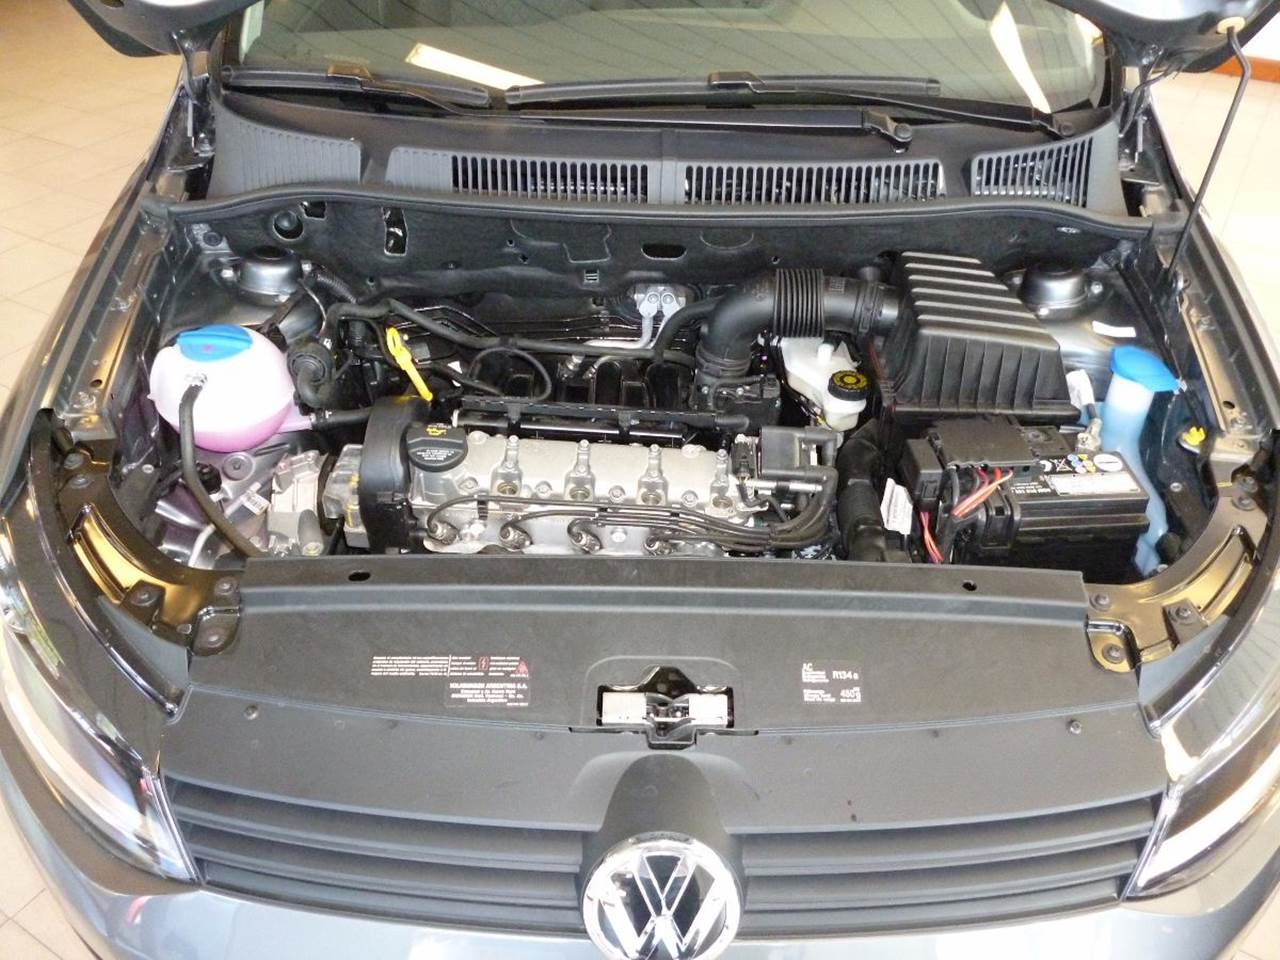 VW Golf 1.6 16V Trendline - compartimento do motor